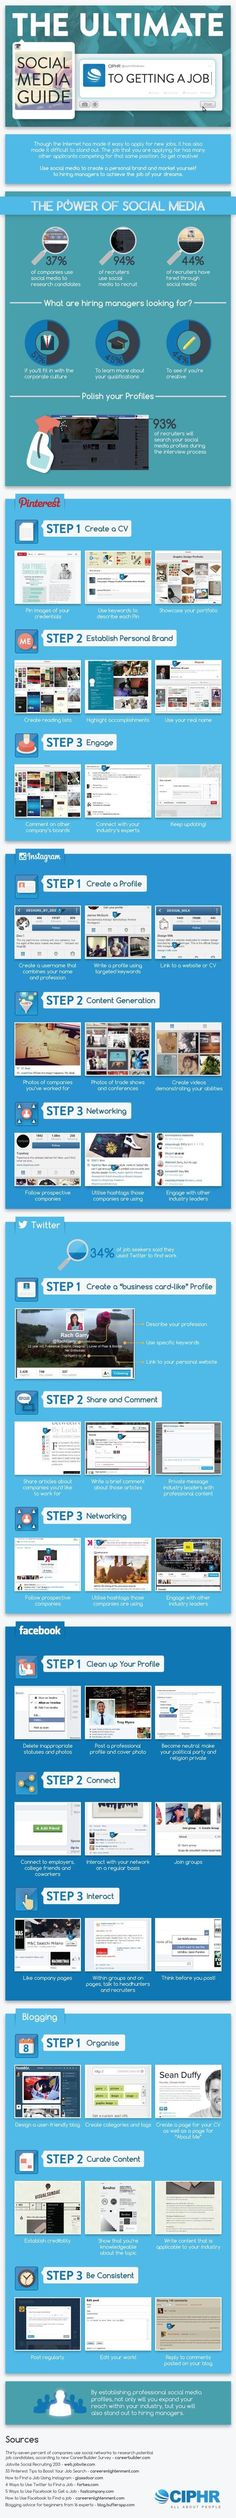 How to Use Social Media to Find a Job [INFOGRAPHIC]